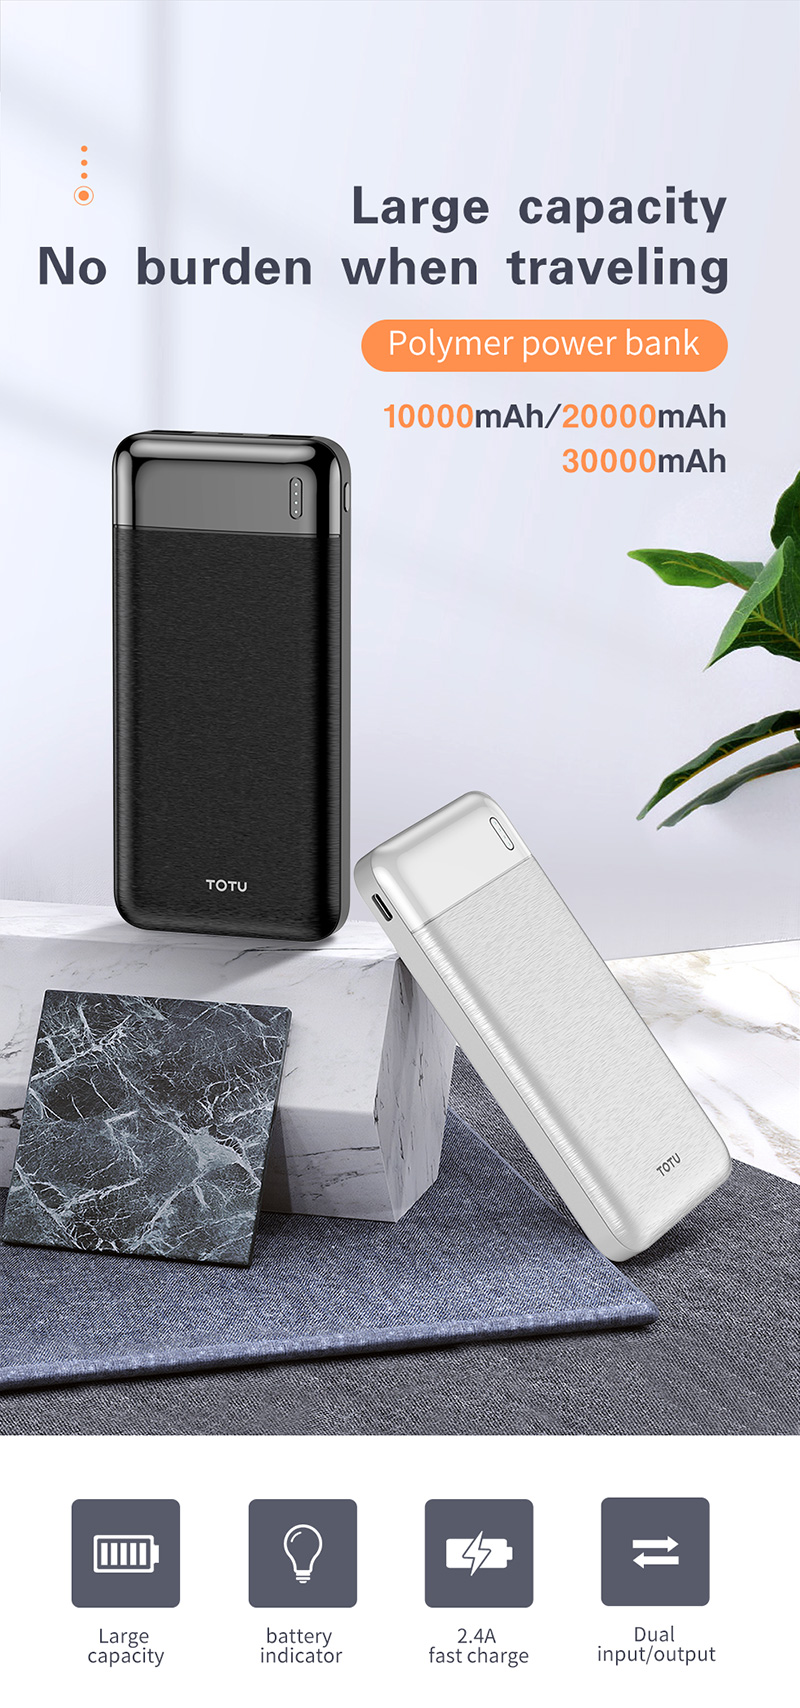 TOTU Joe series trending hot products dual usb 5V 2.4A quick charge slim portable power bank 10000mah